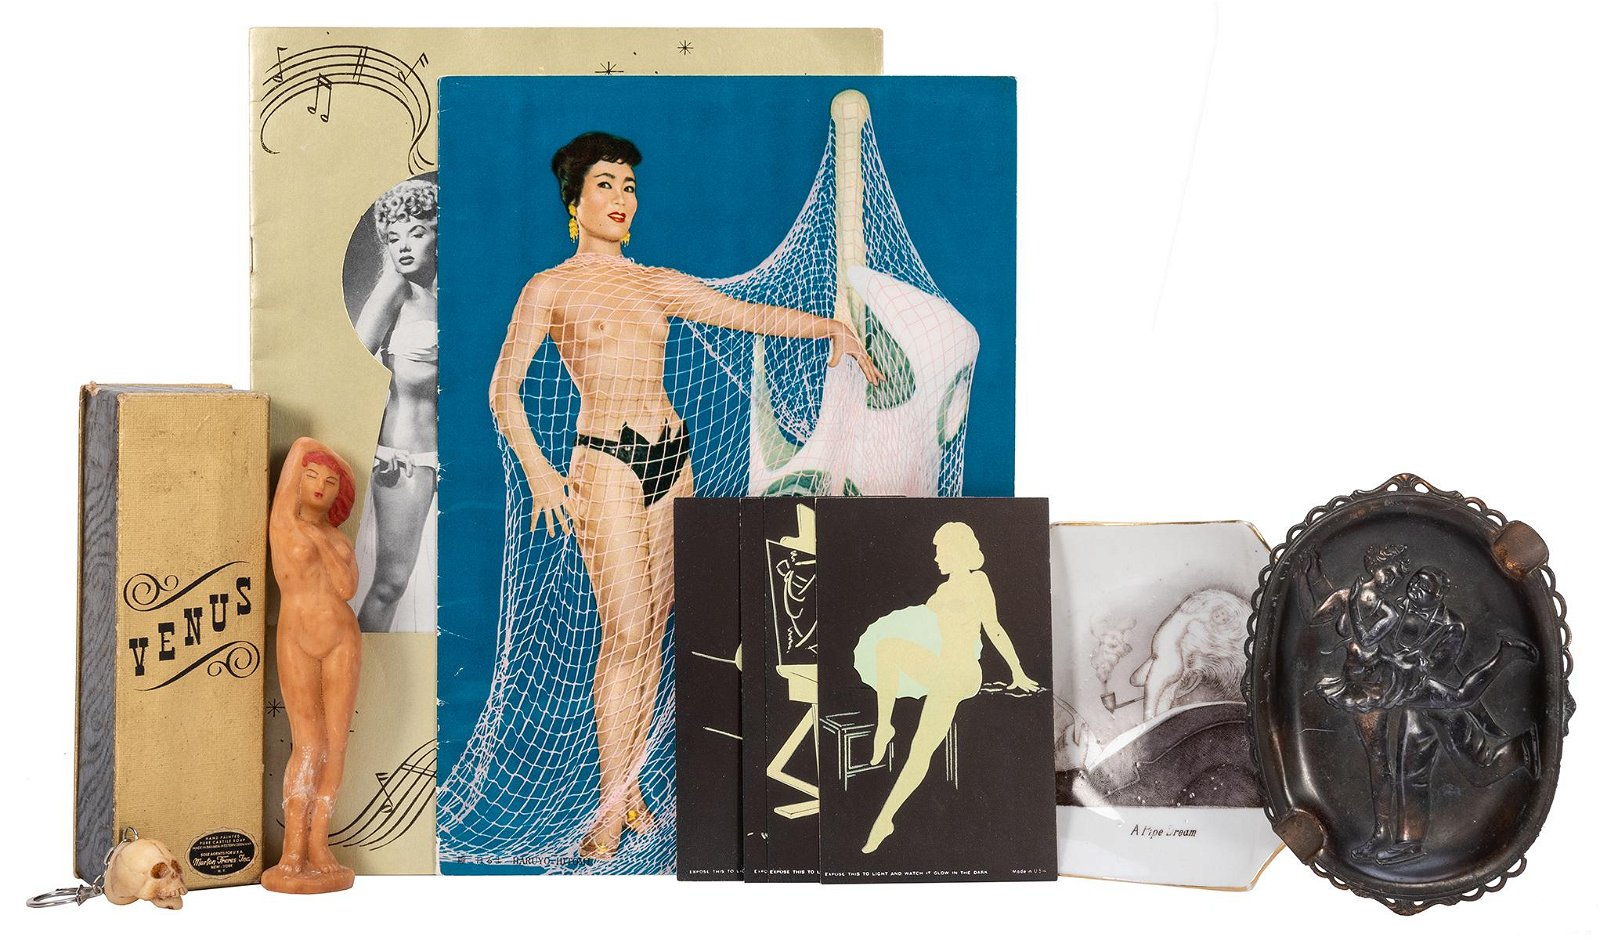 Pair of Erotic Astrays and Pin-Up Items. Including a